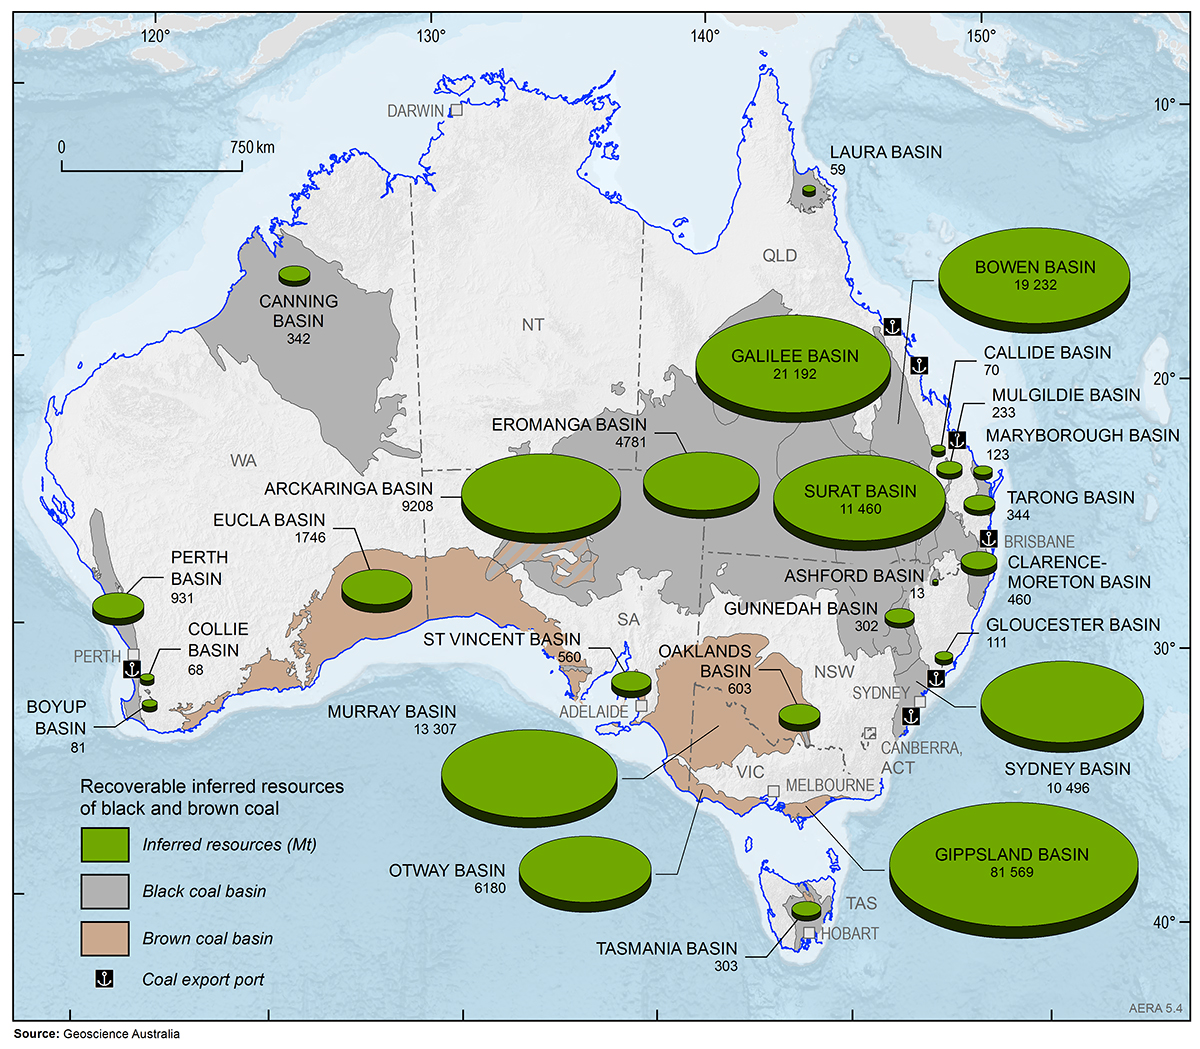 Due to the complexity of this image and the niche scientific target audience, no alternative description has been provided. Please email Geoscience Australia at clientservices@ga.gov.au for an alternative description.